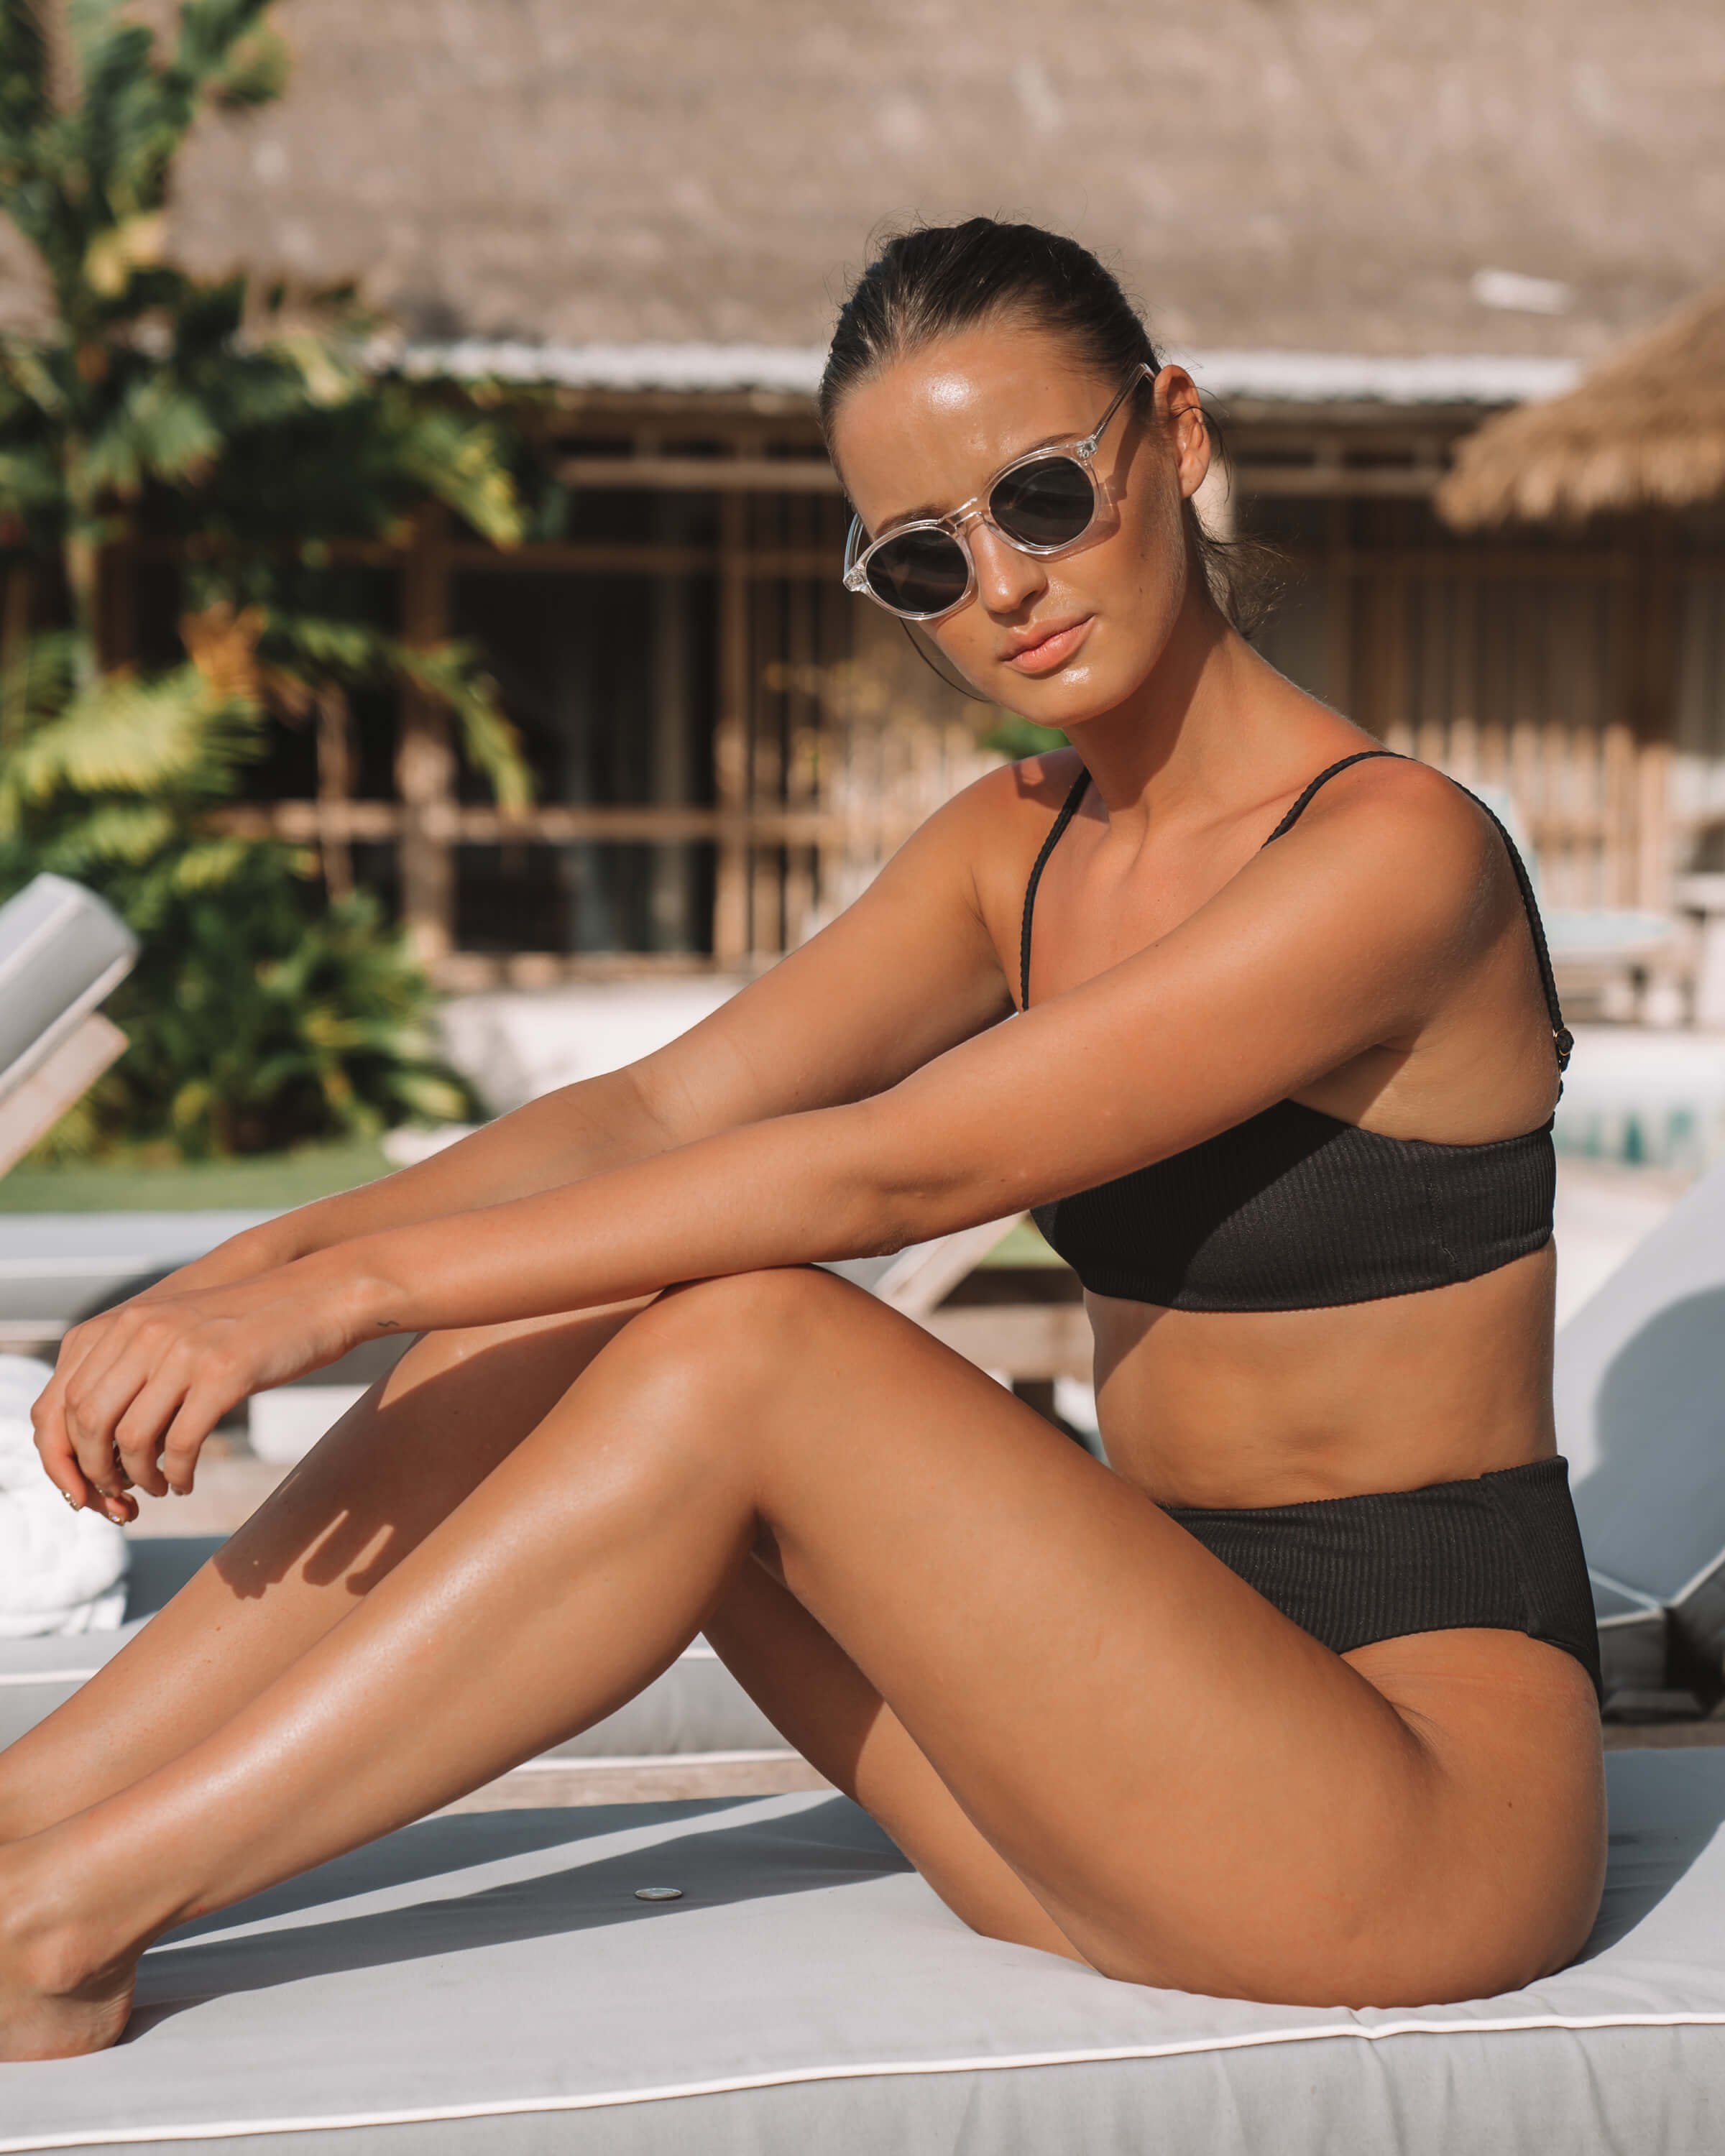 Soda Shades of Summer Australias best sunglasses eyewear online brand – Bali Model shoot_-26